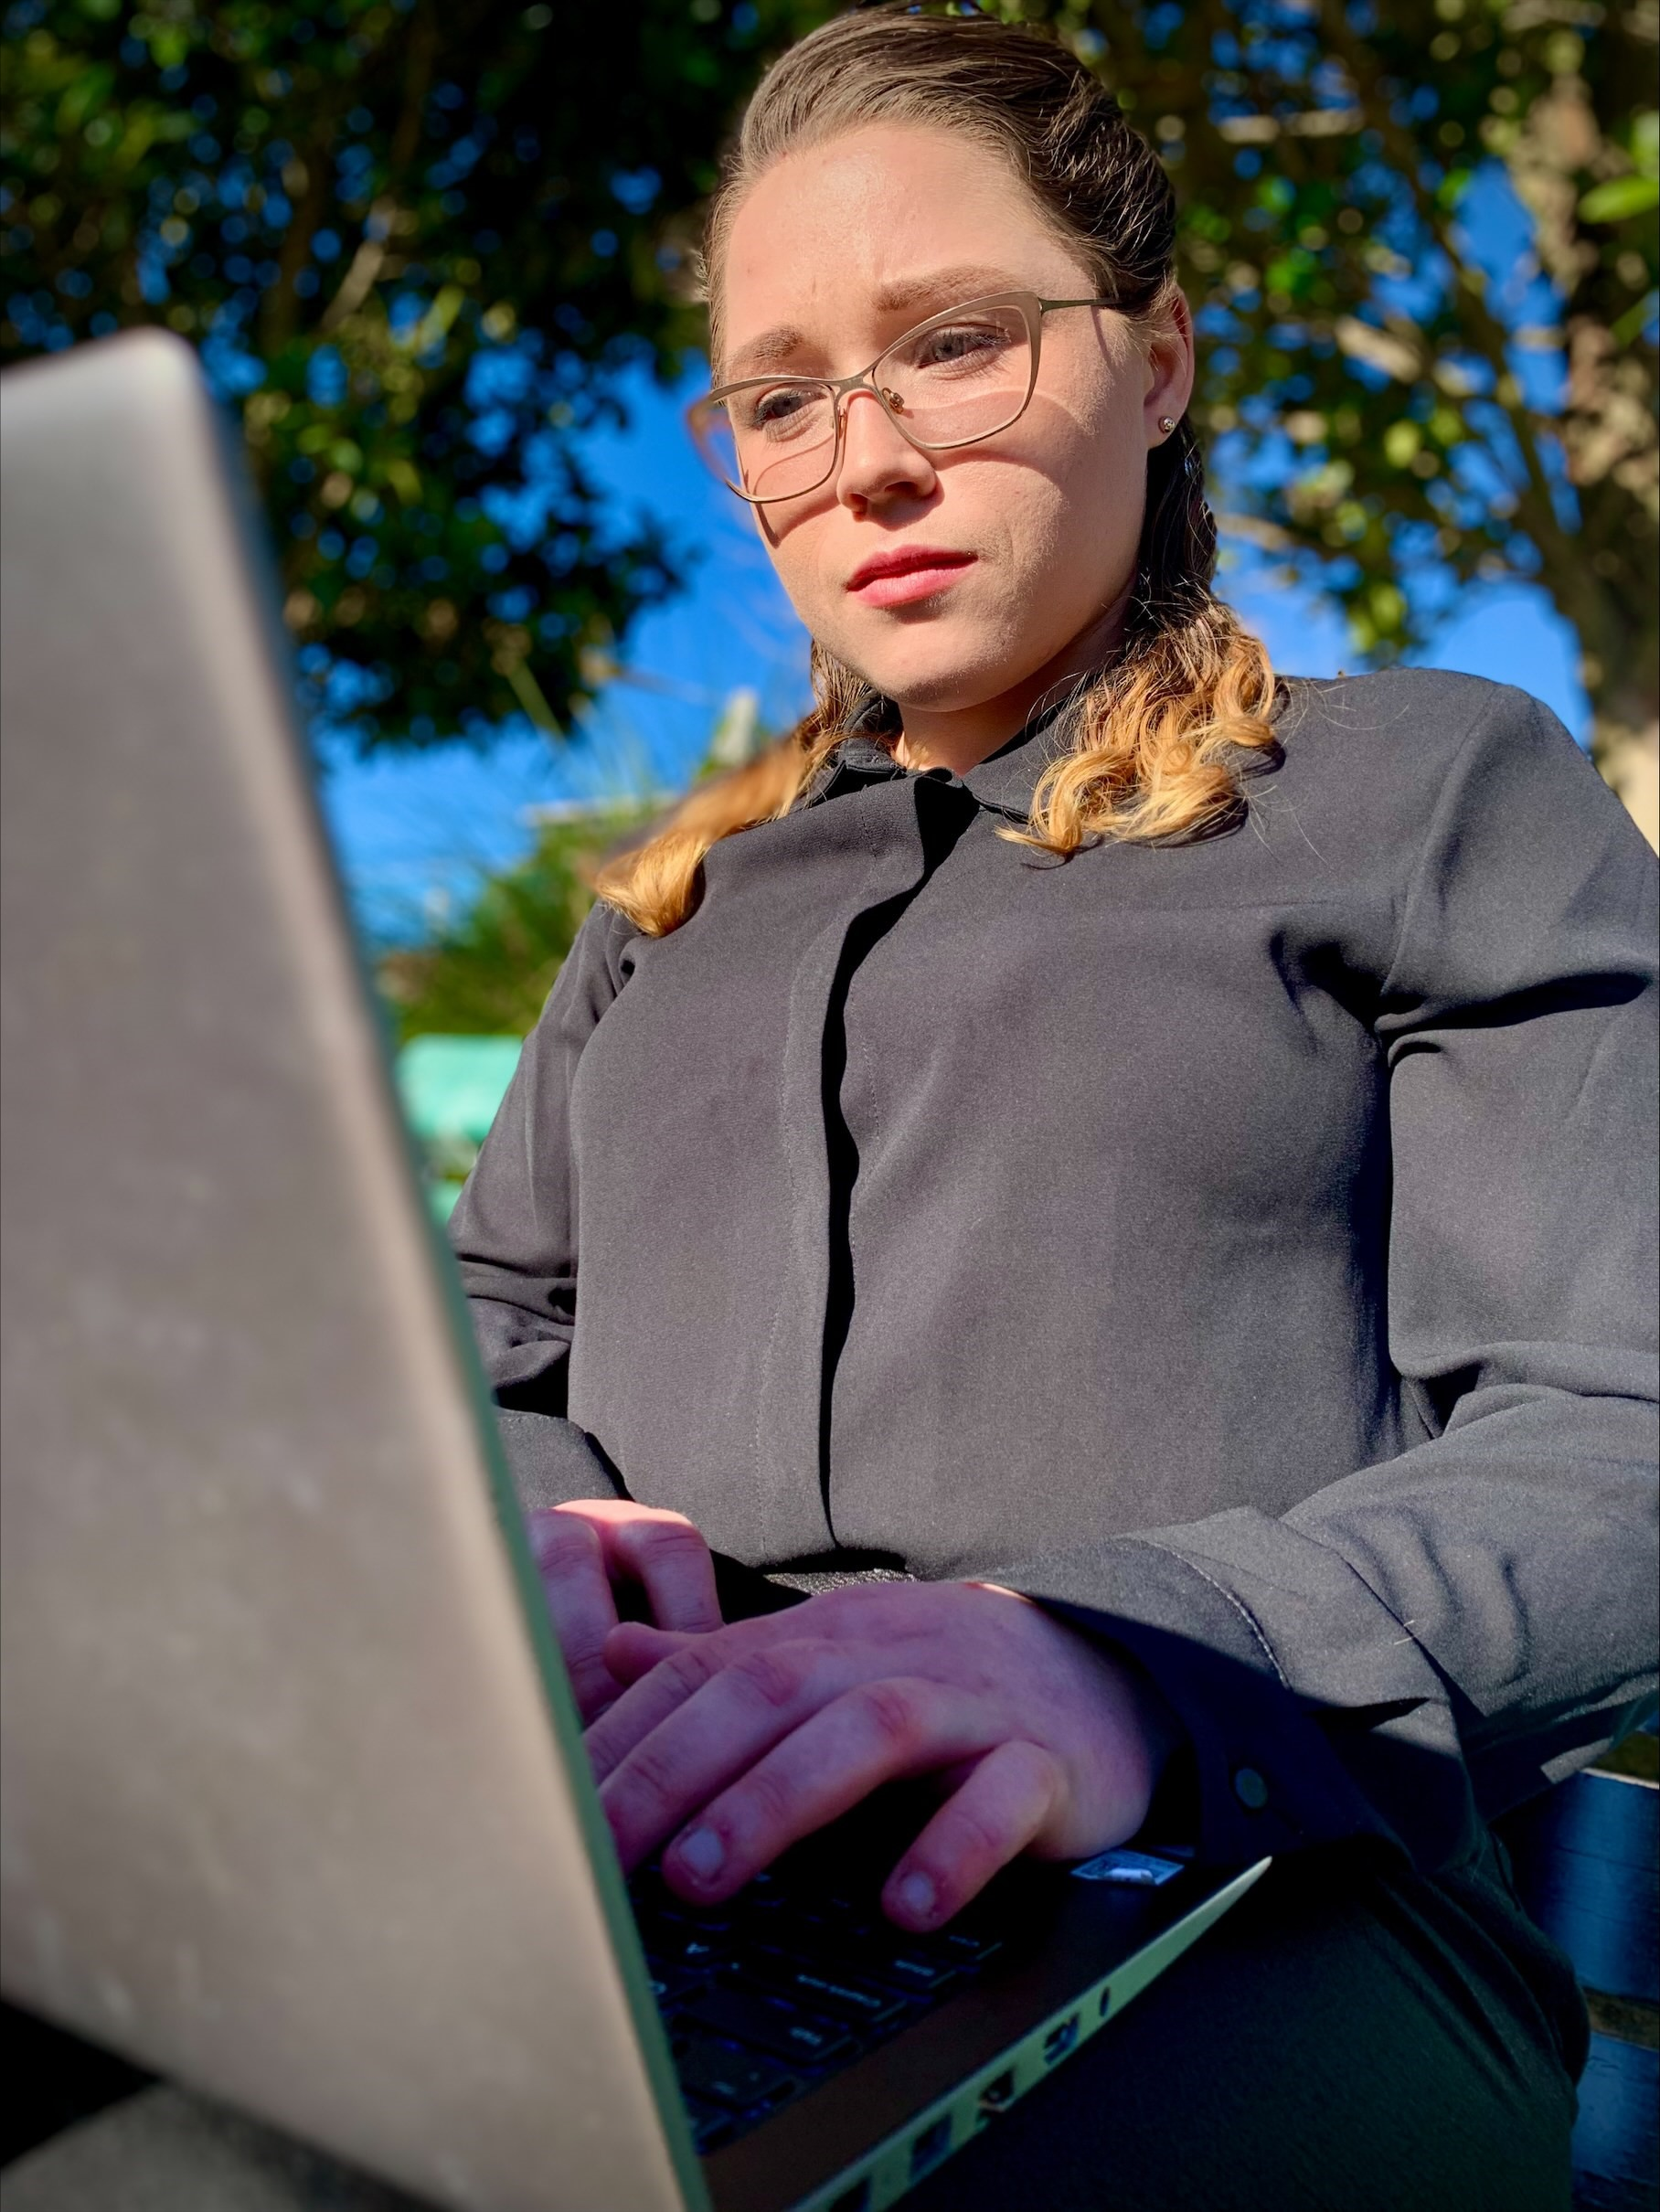 Melyssa Troy on her laptop at the park looking at a report her organisation did on consumer complaints.